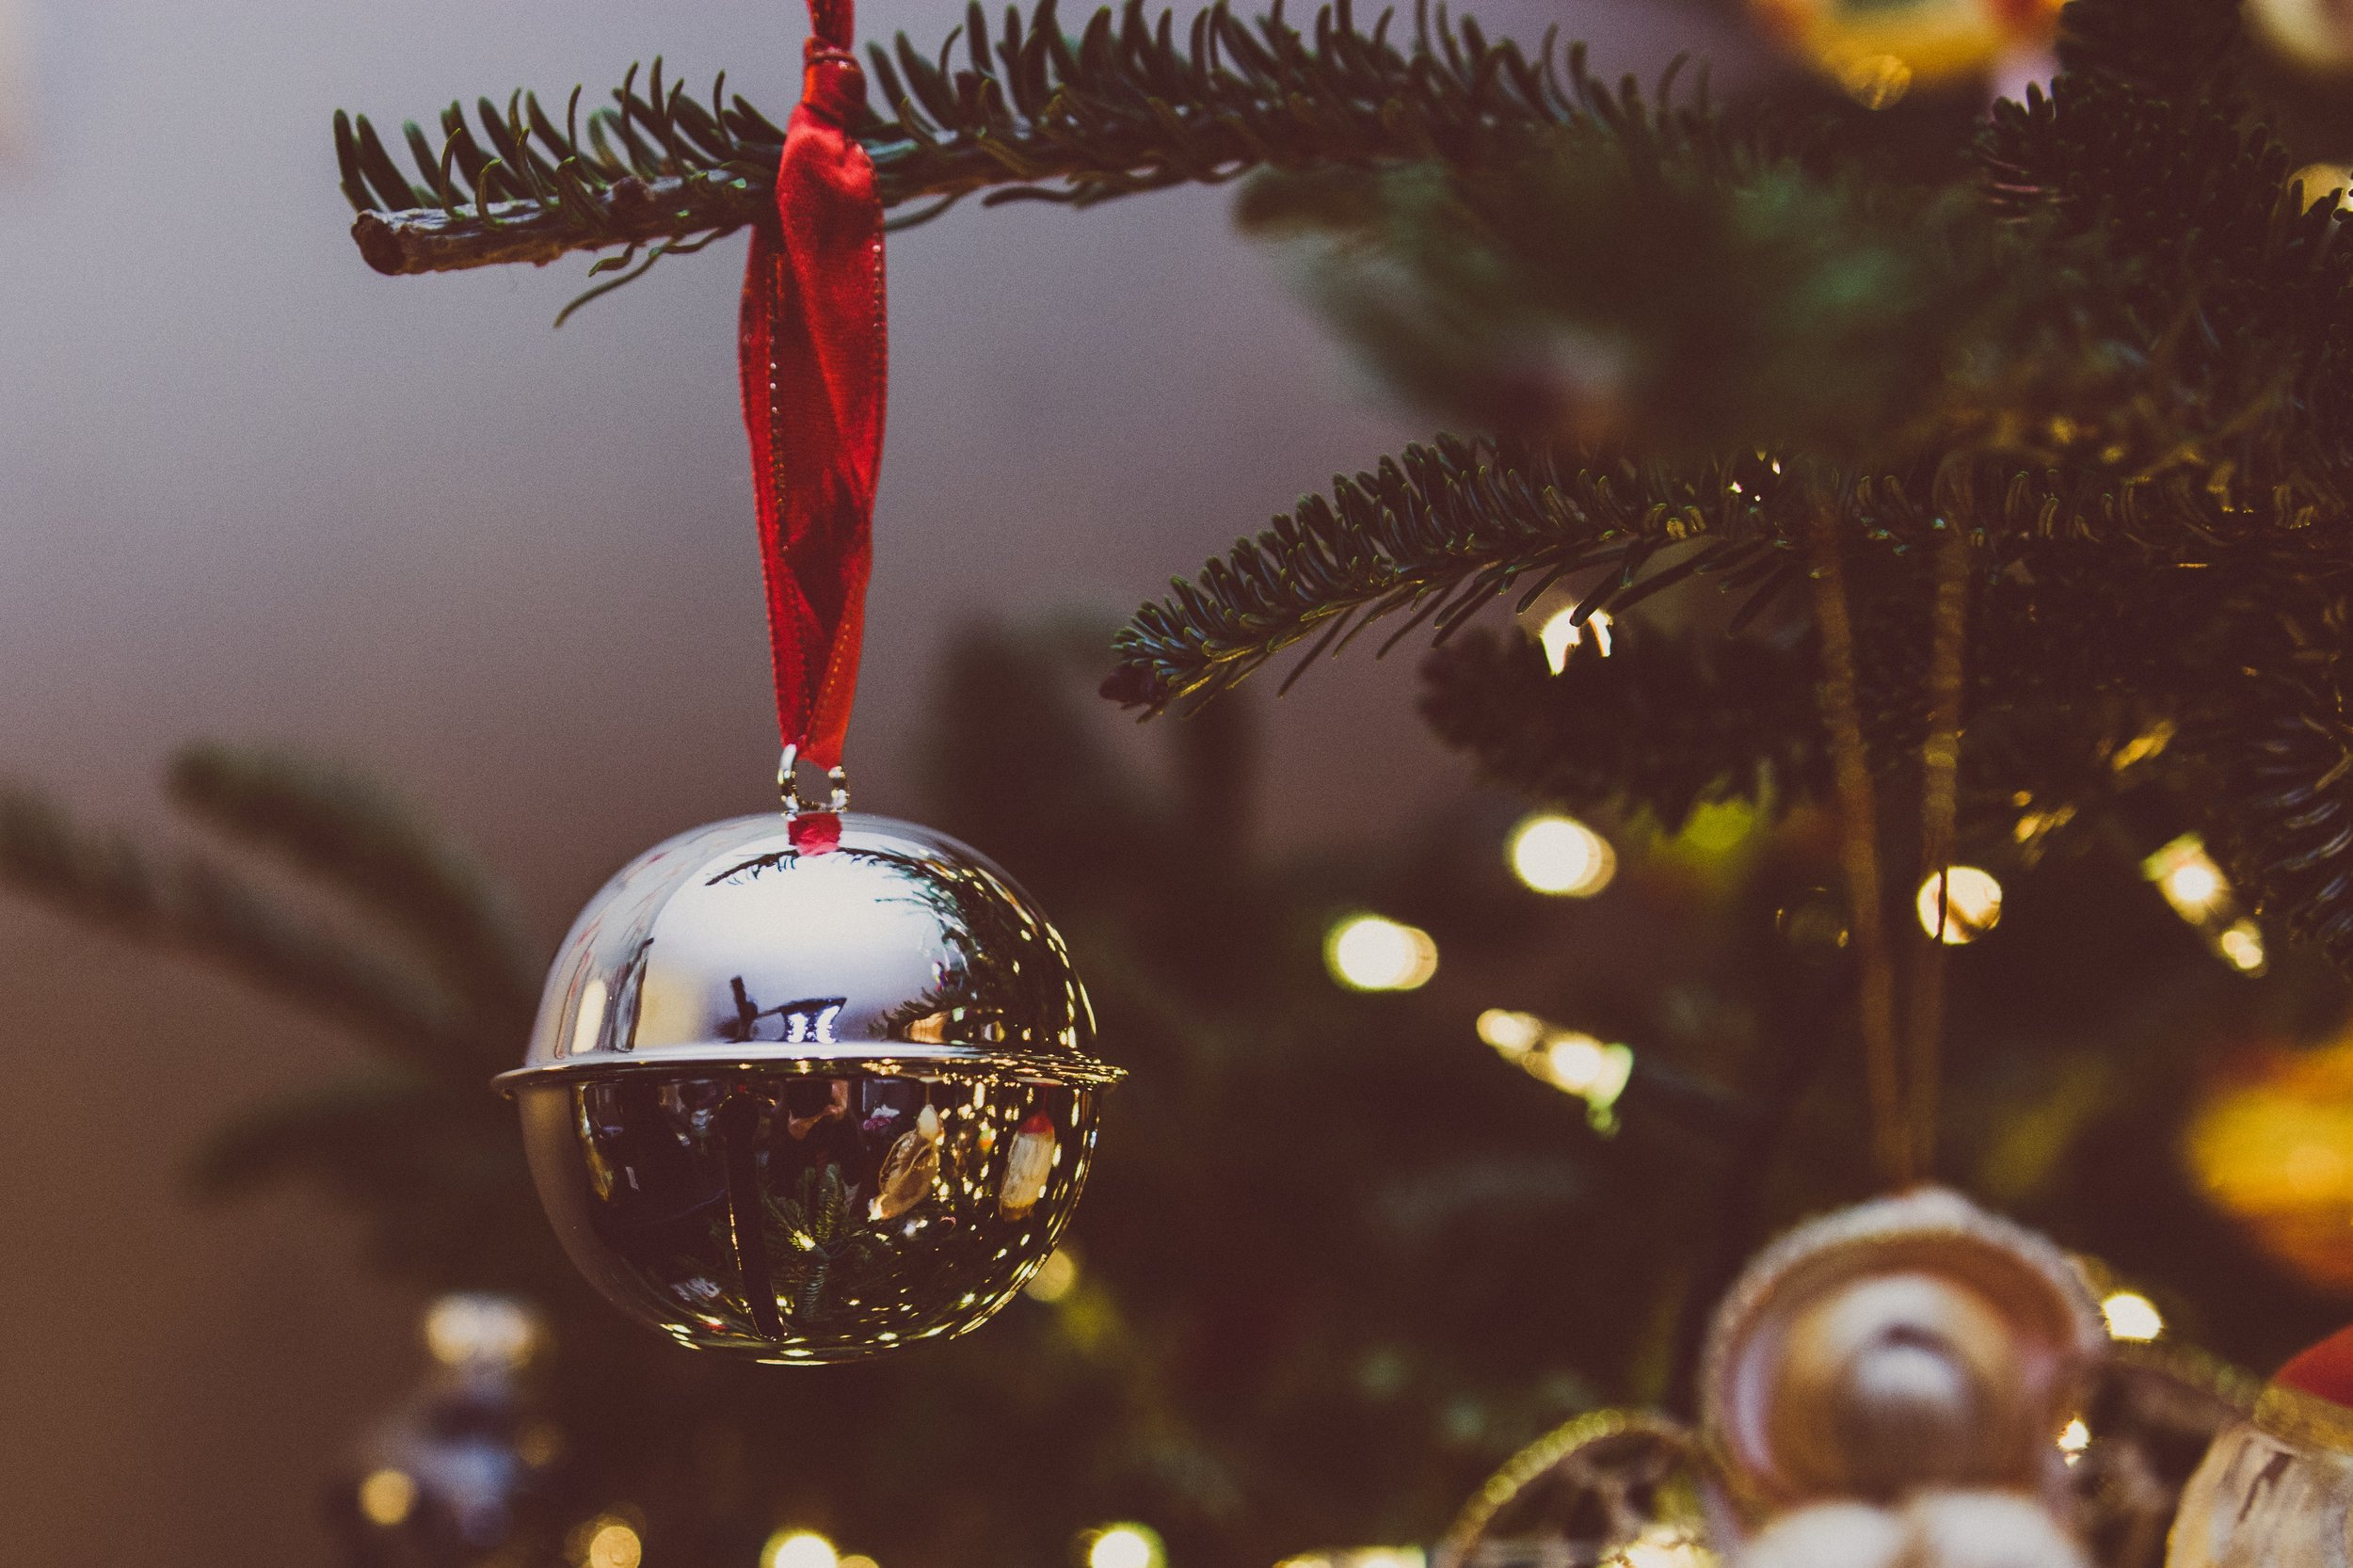 3. Match up with your Why - Find the silver bell that rings just for you